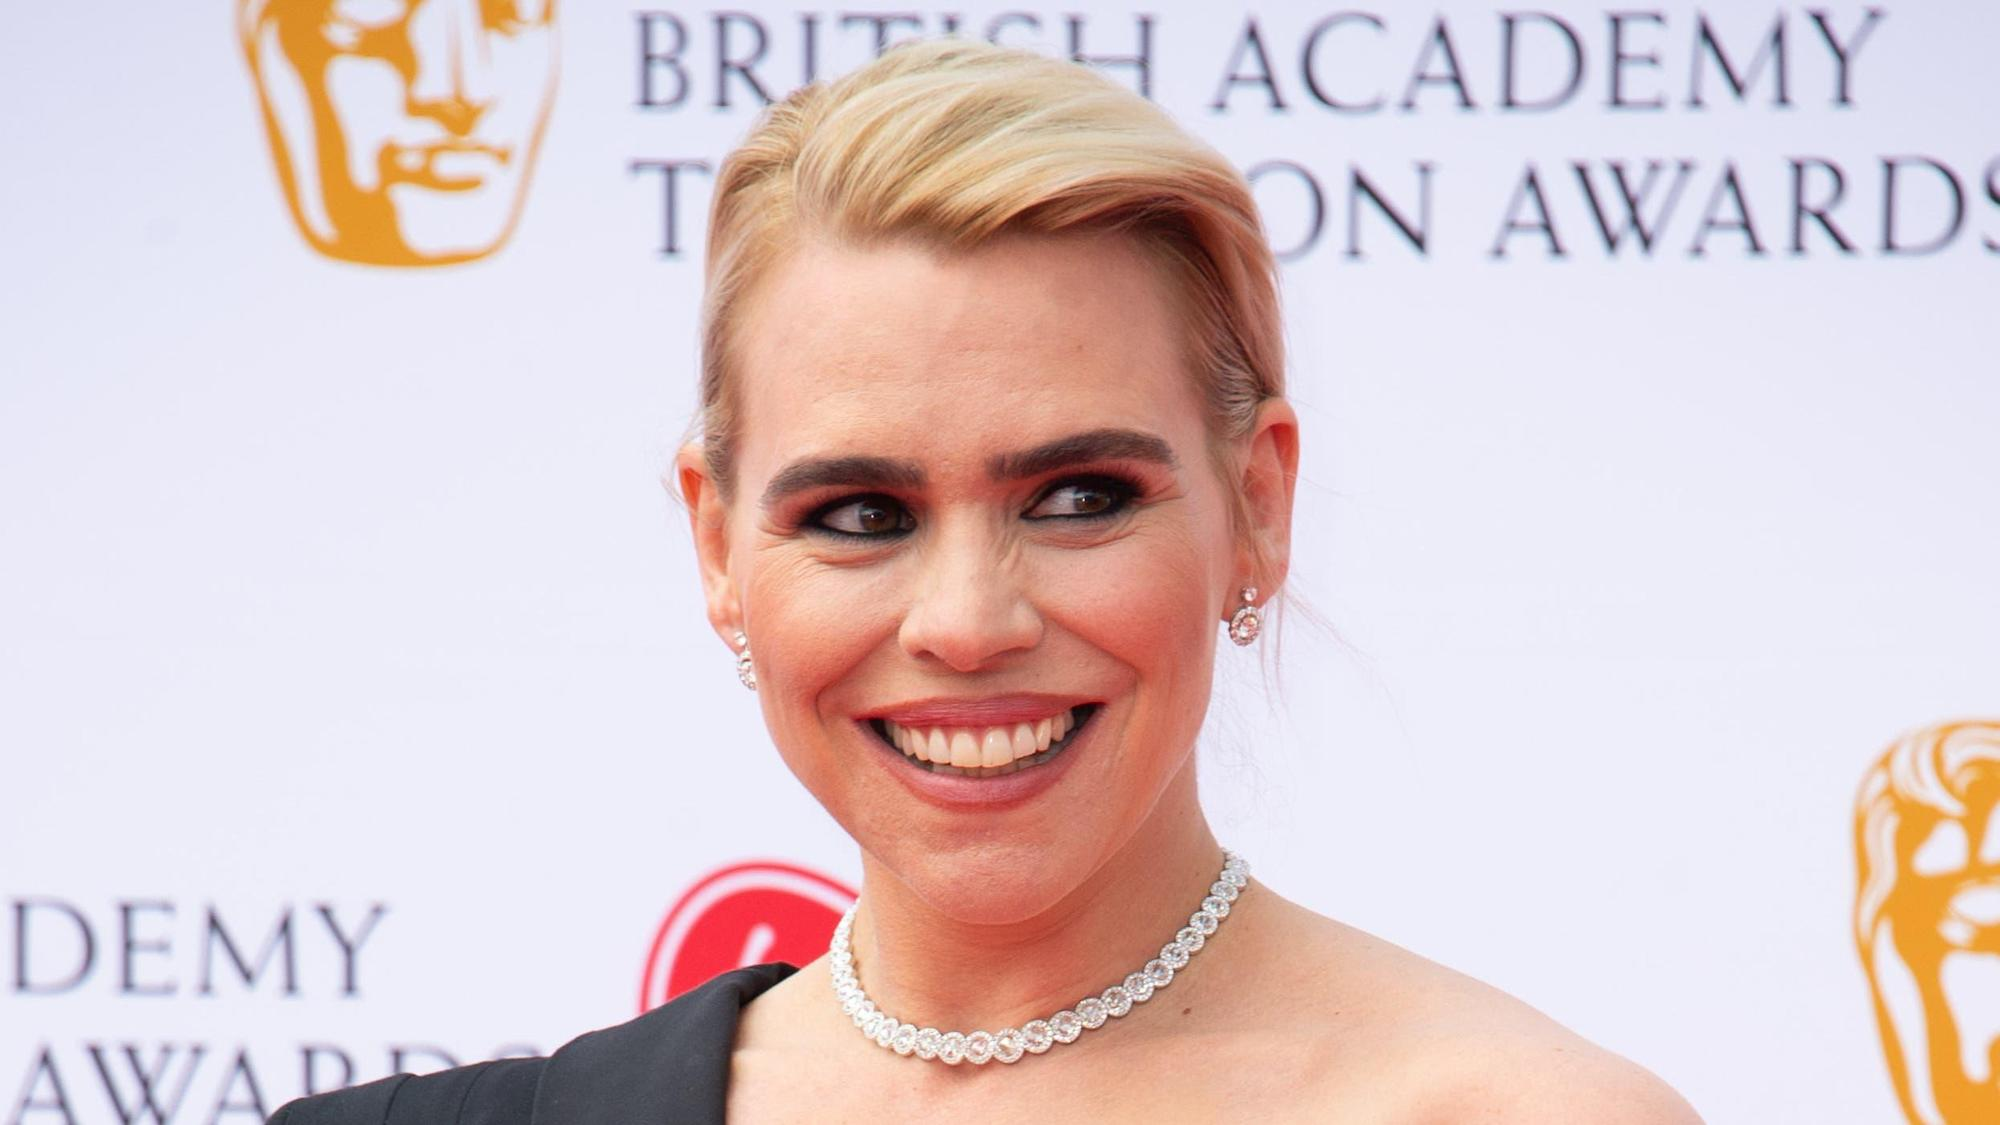 Billie Piper: I had to 'fall apart' in my twenties